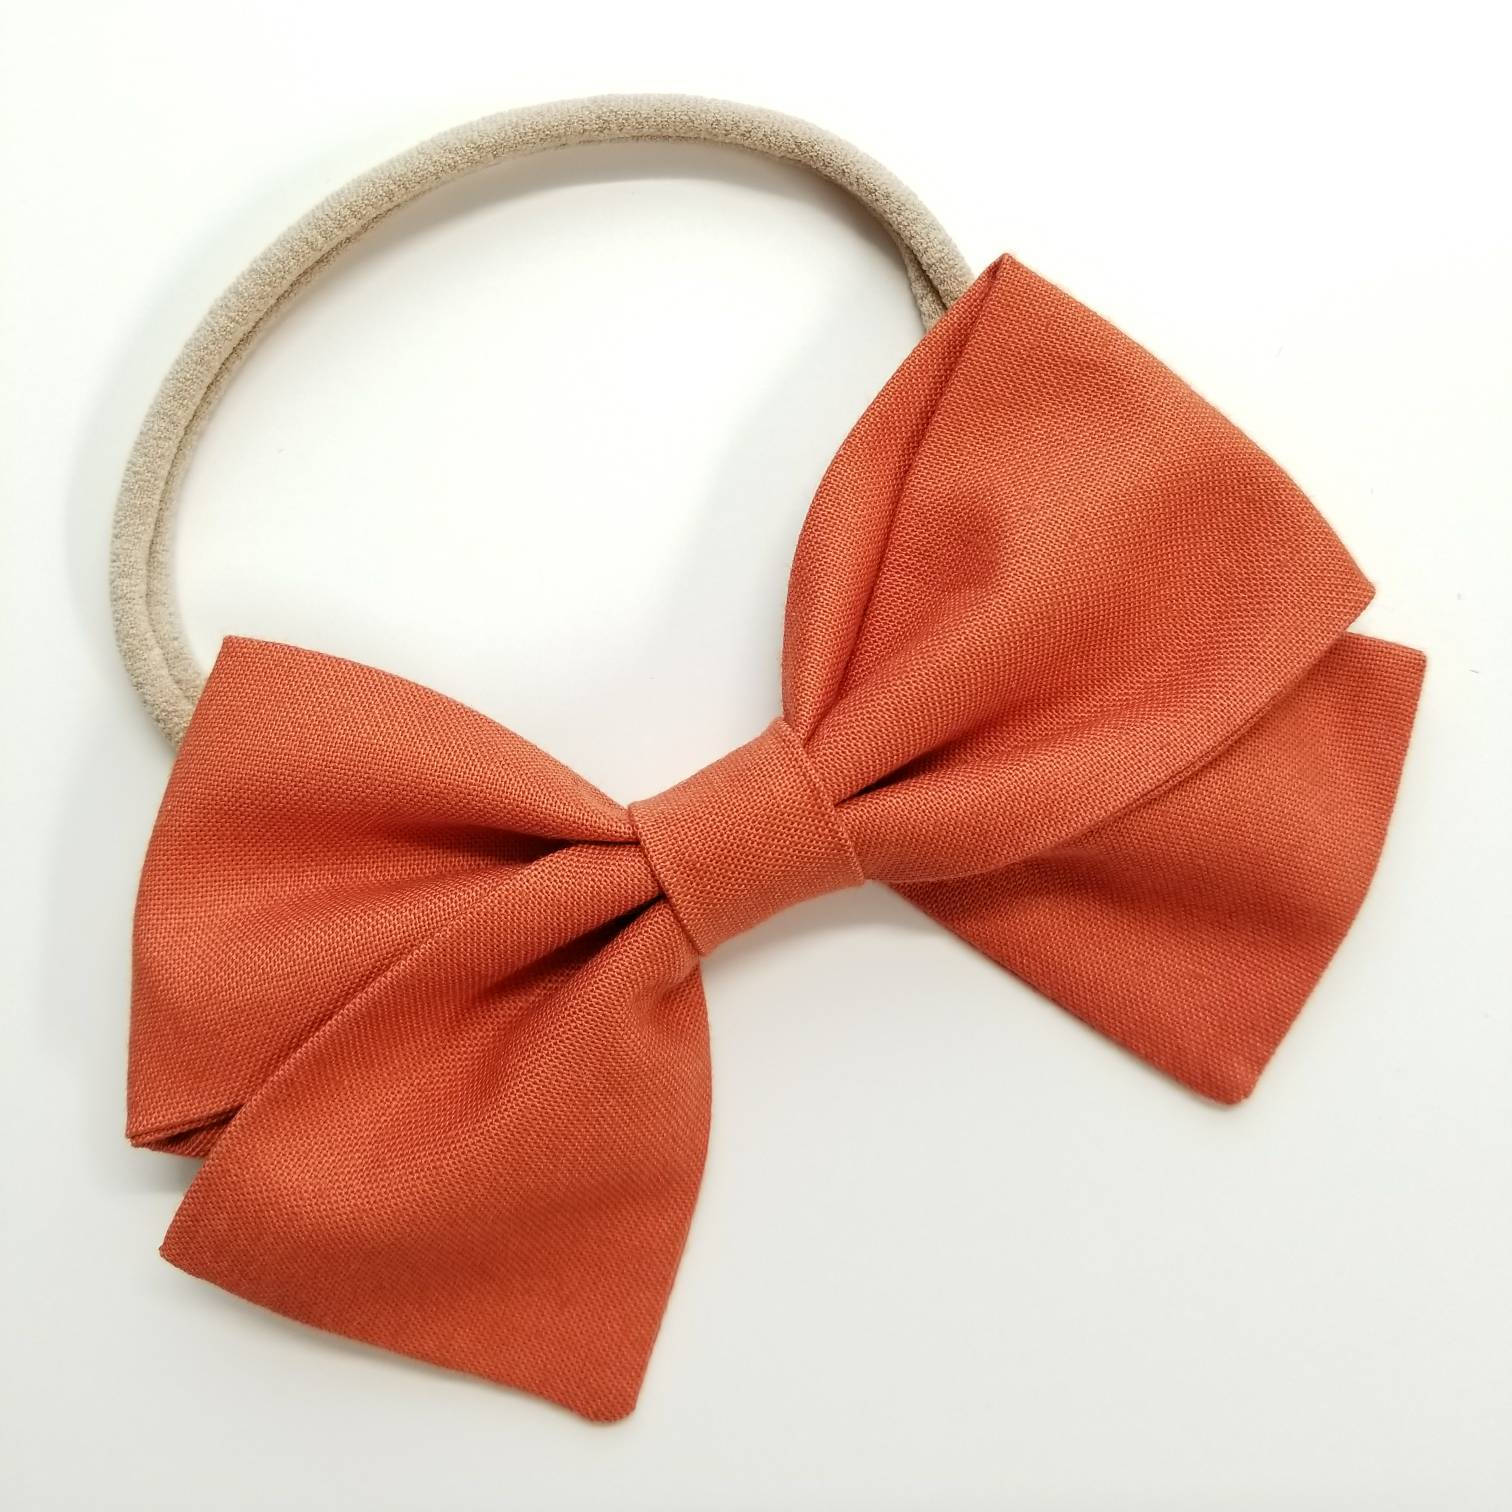 Copper, Handmade Bow, Nylon Headband, fabric bow, Hair Clip, Baby headband, baby bow, Vanaguelite, hair accessories,